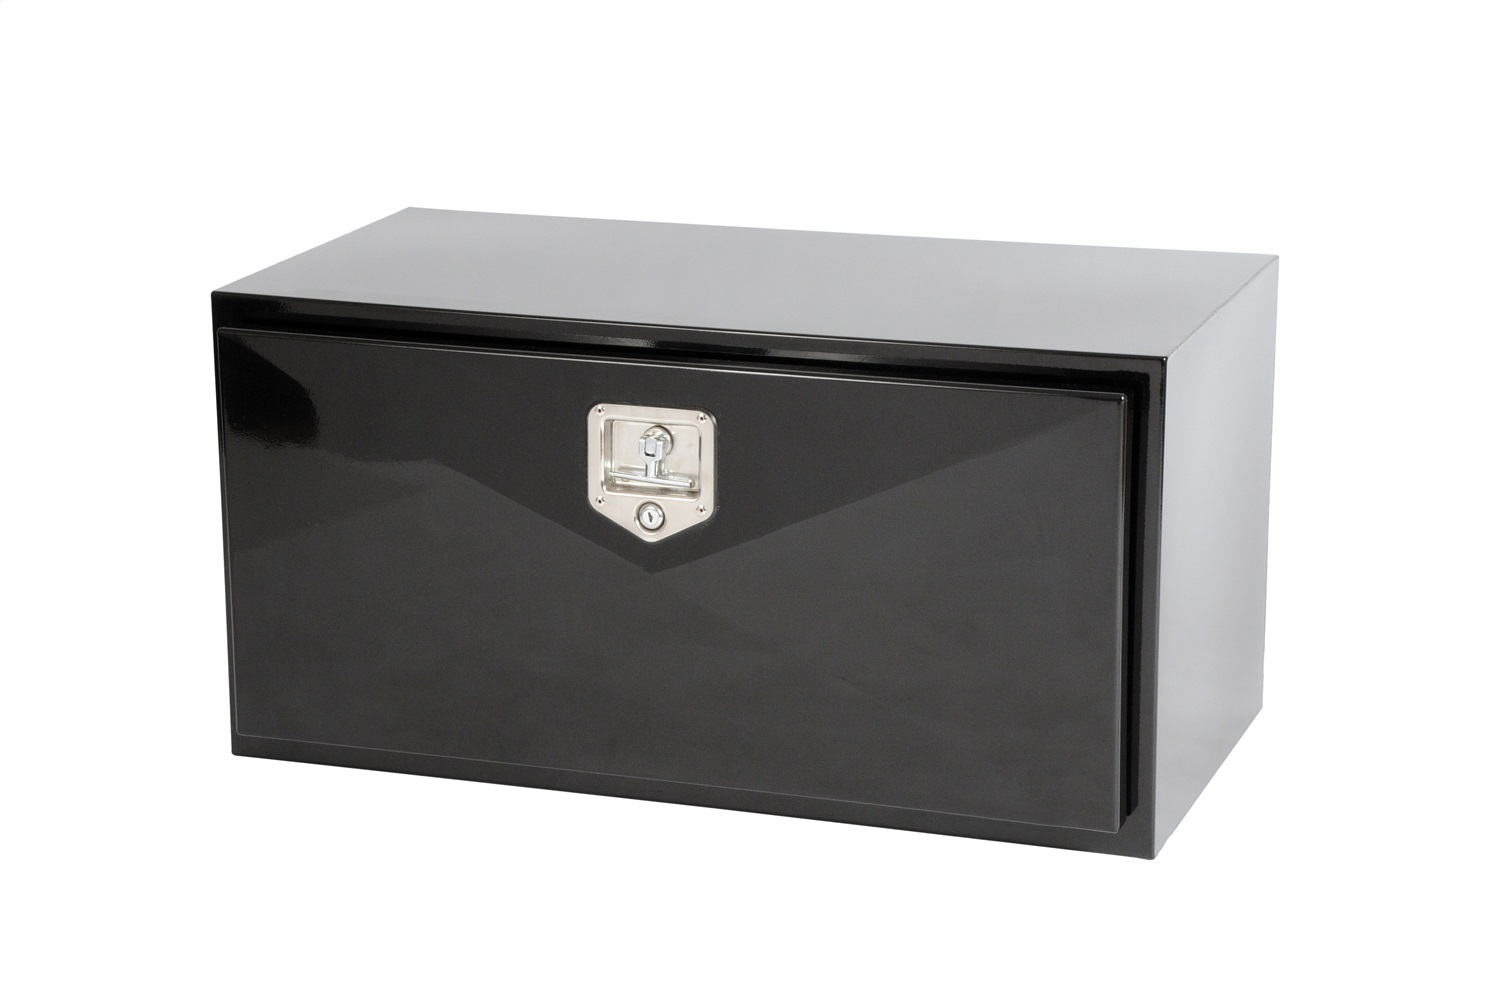 Underbed Tool Box, 12-Gauge Steel, Gloss Black Powder Coat, Volume 6.75 cu. ft., 36 in x 18 in. x 18 in., Mounting Brackets Sold Separately